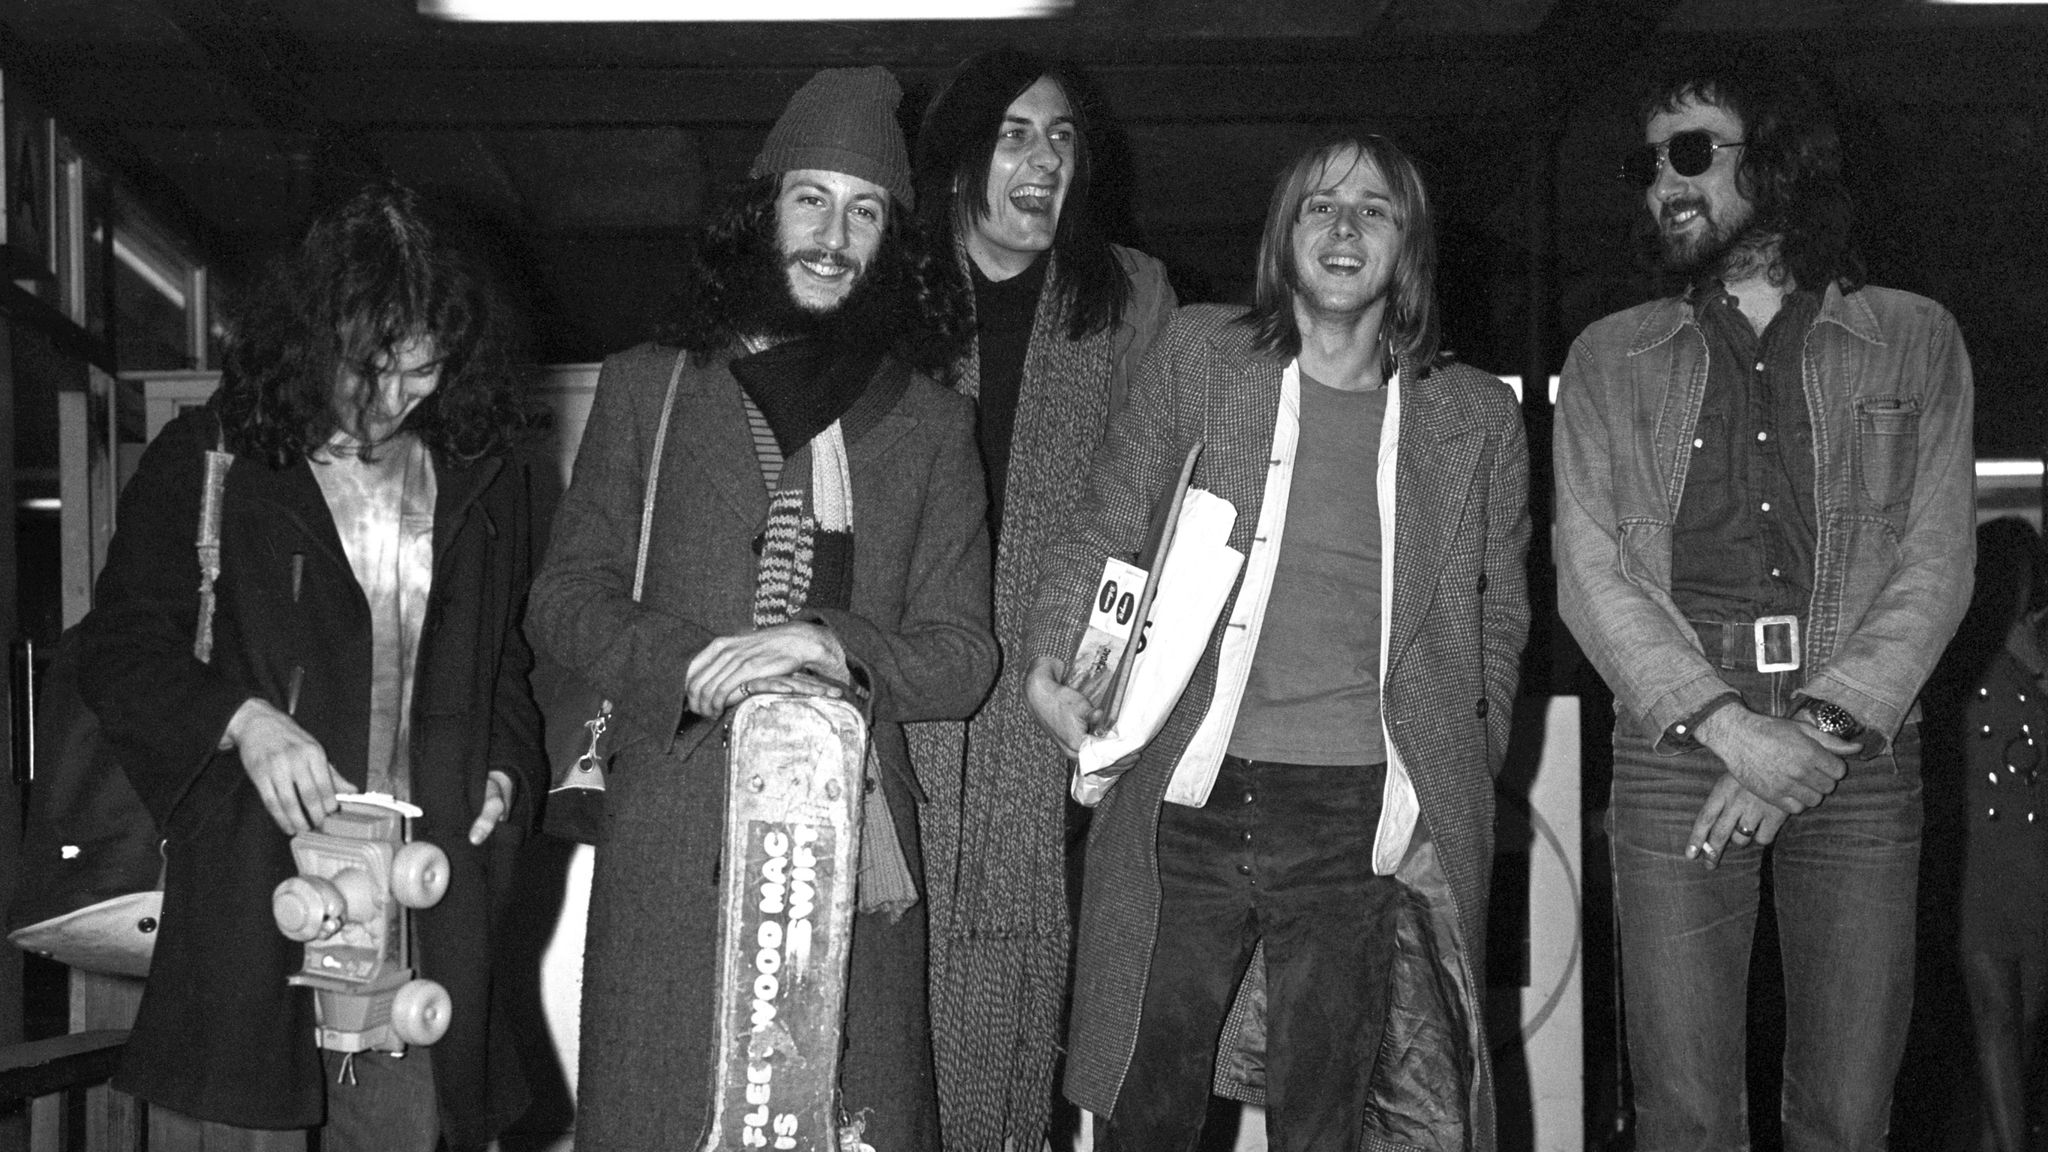 Green (second left) and Fleetwood Mac in 1970